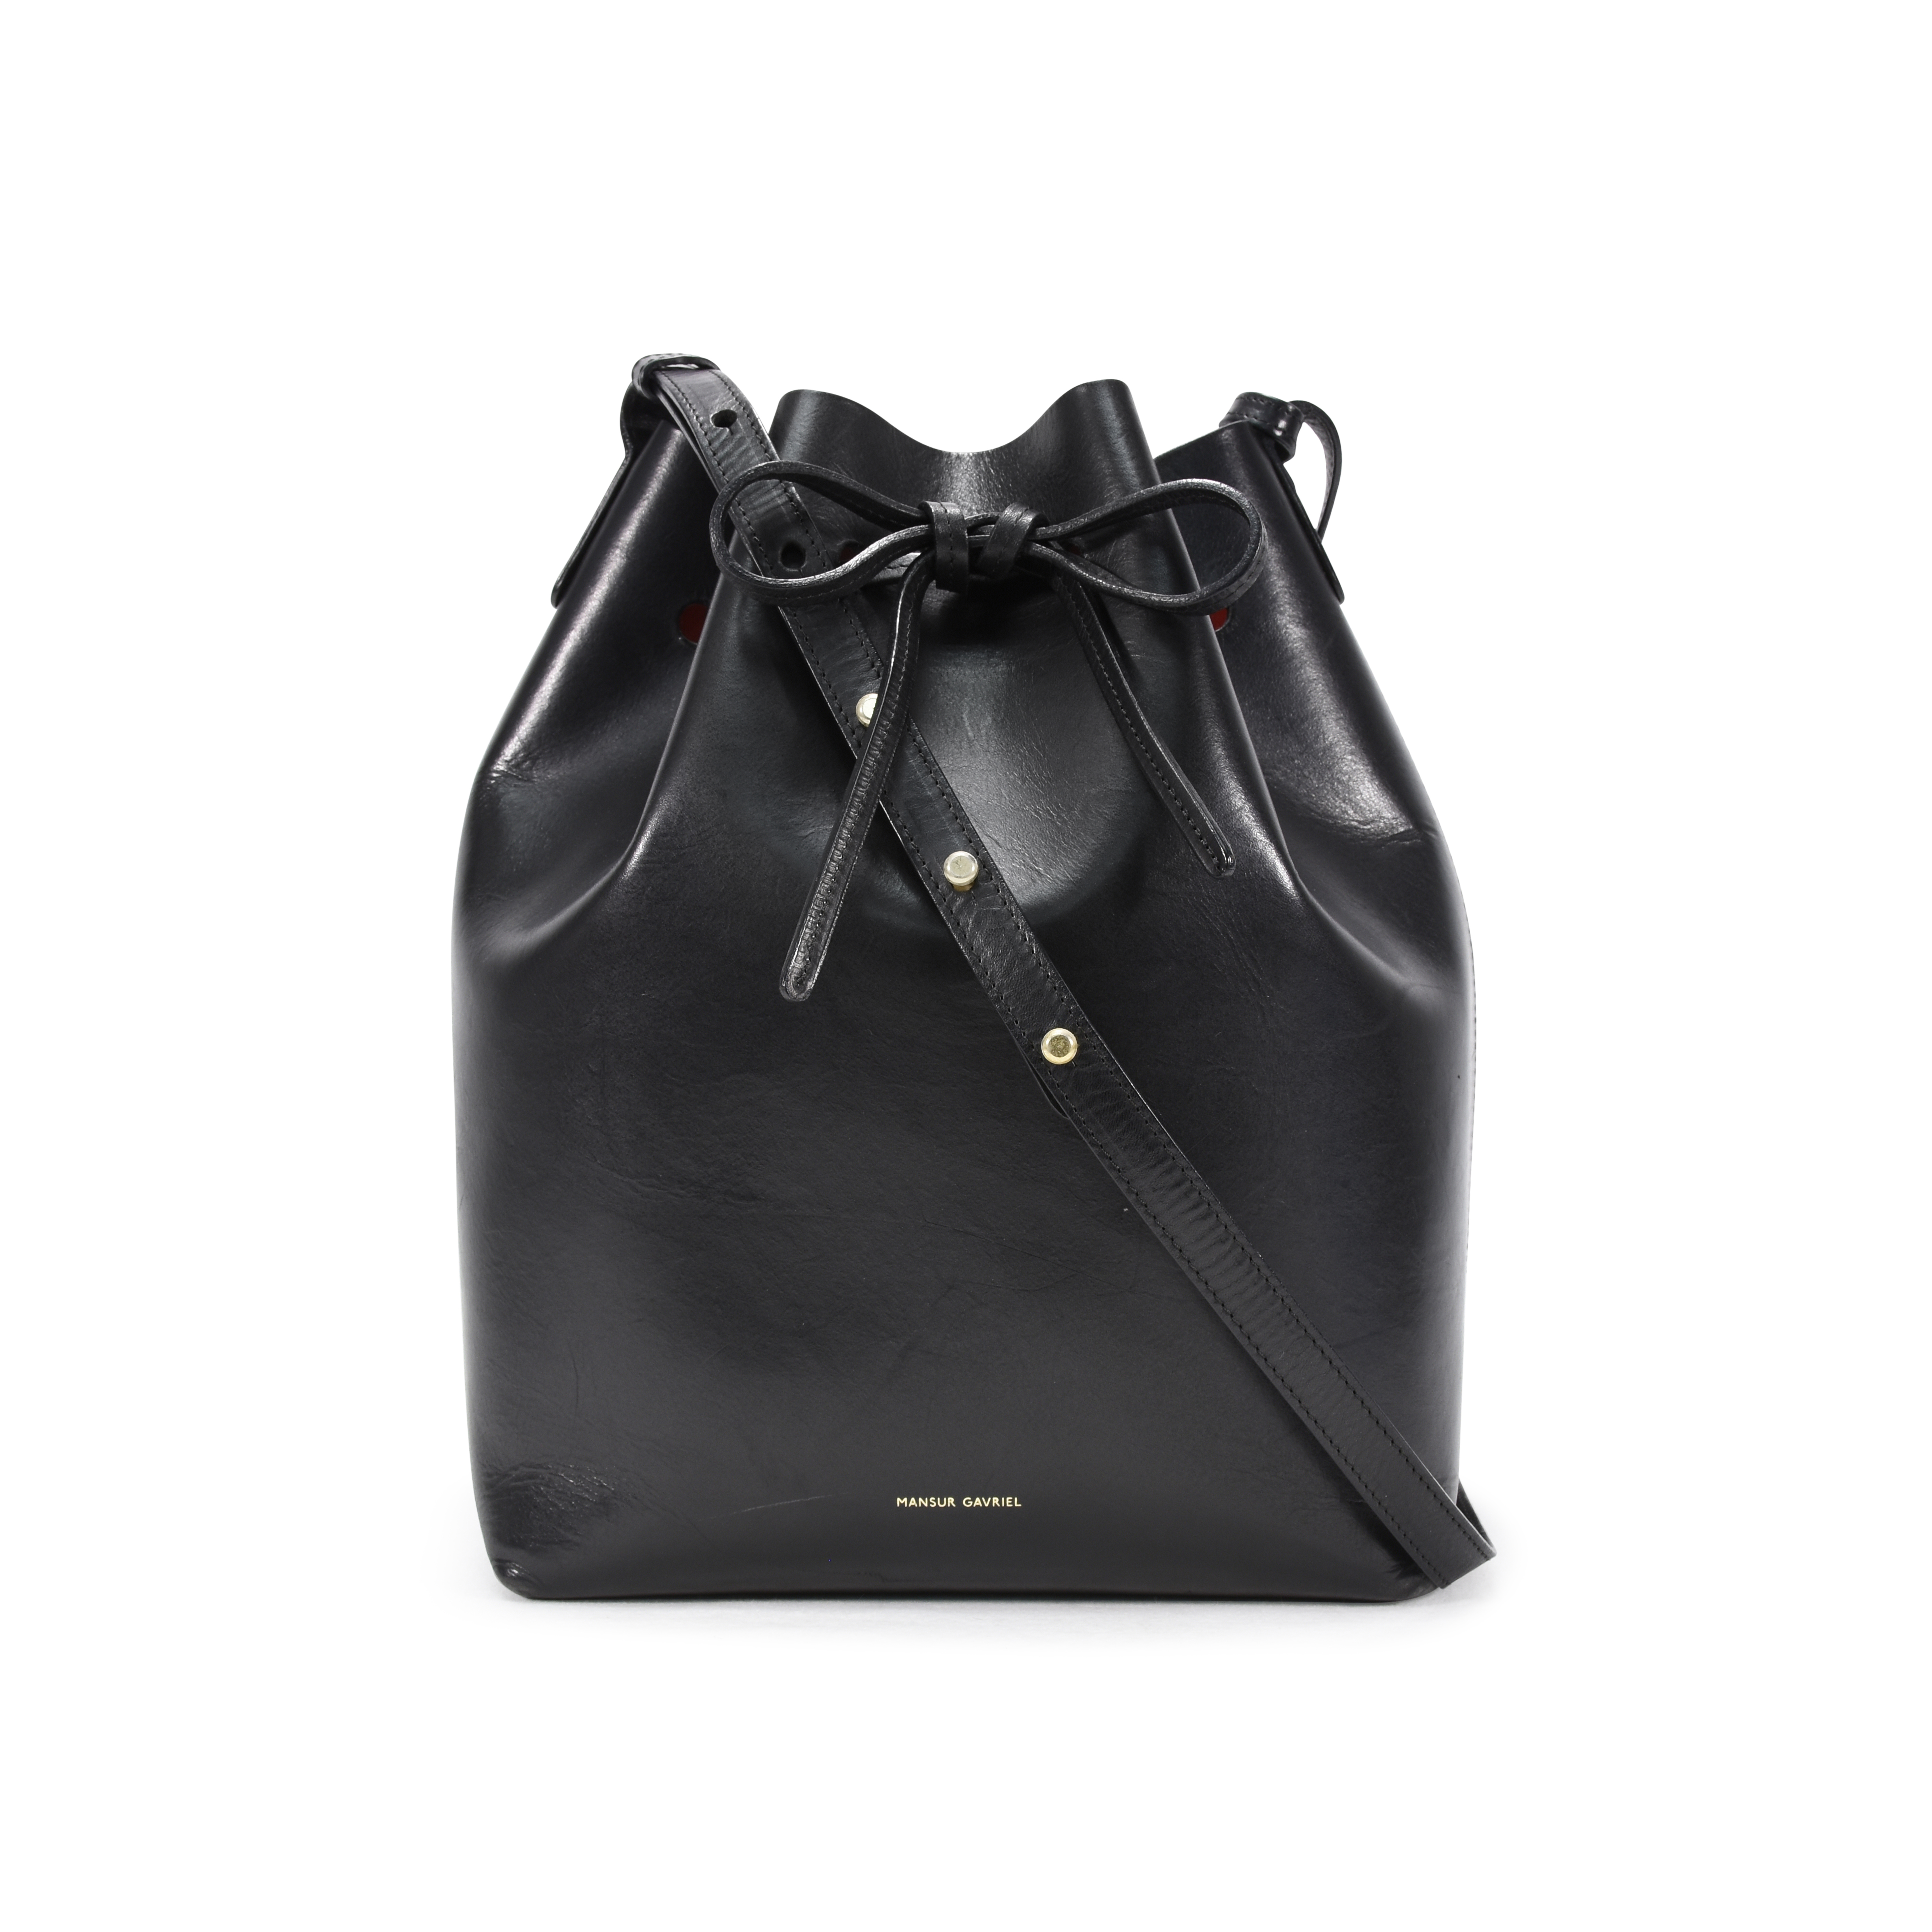 Authentic Pre Owned Mansur Gavriel Flamma Bucket Bag Pss 356 00003 The Fifth Collection